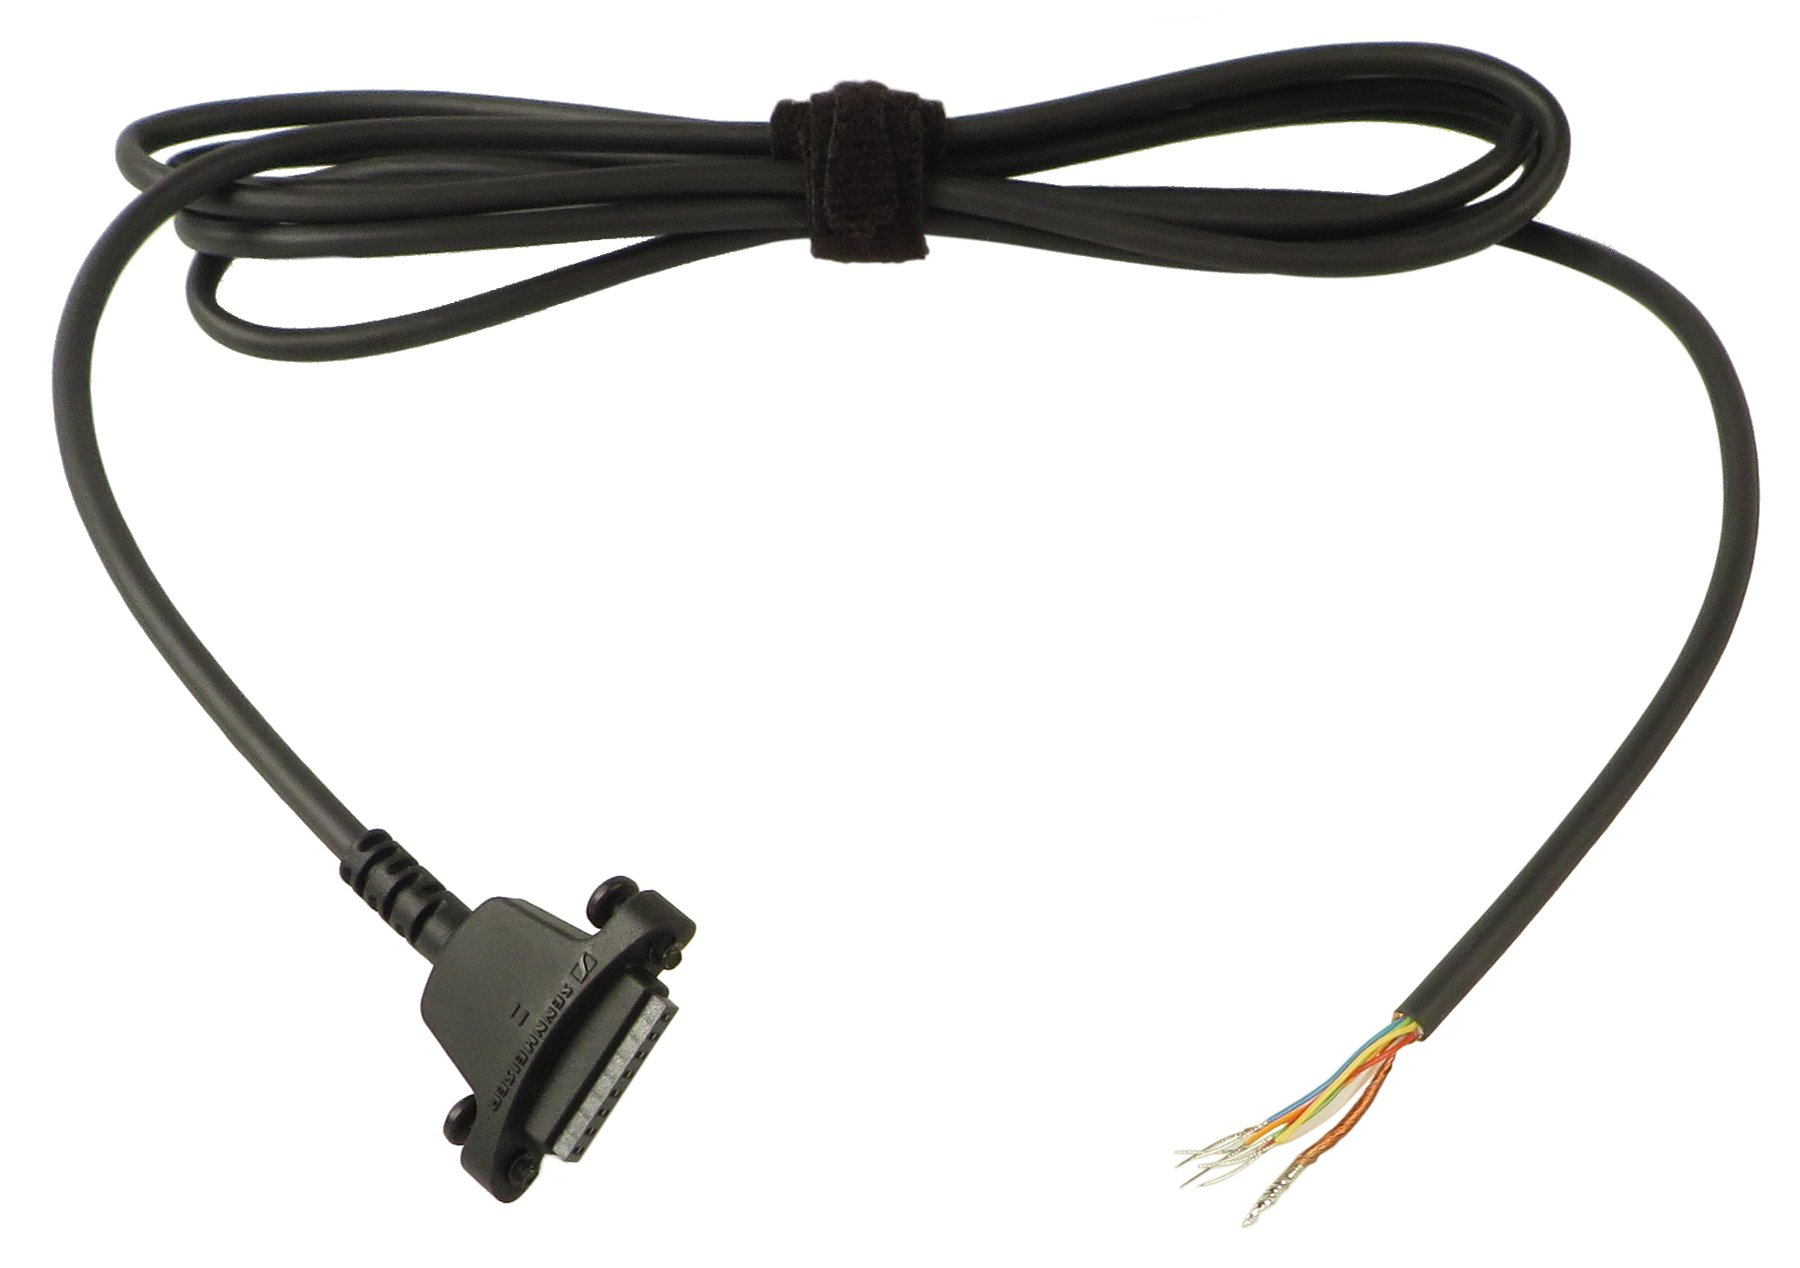 Cable-6 Unterminated Kevlar Headset Cable